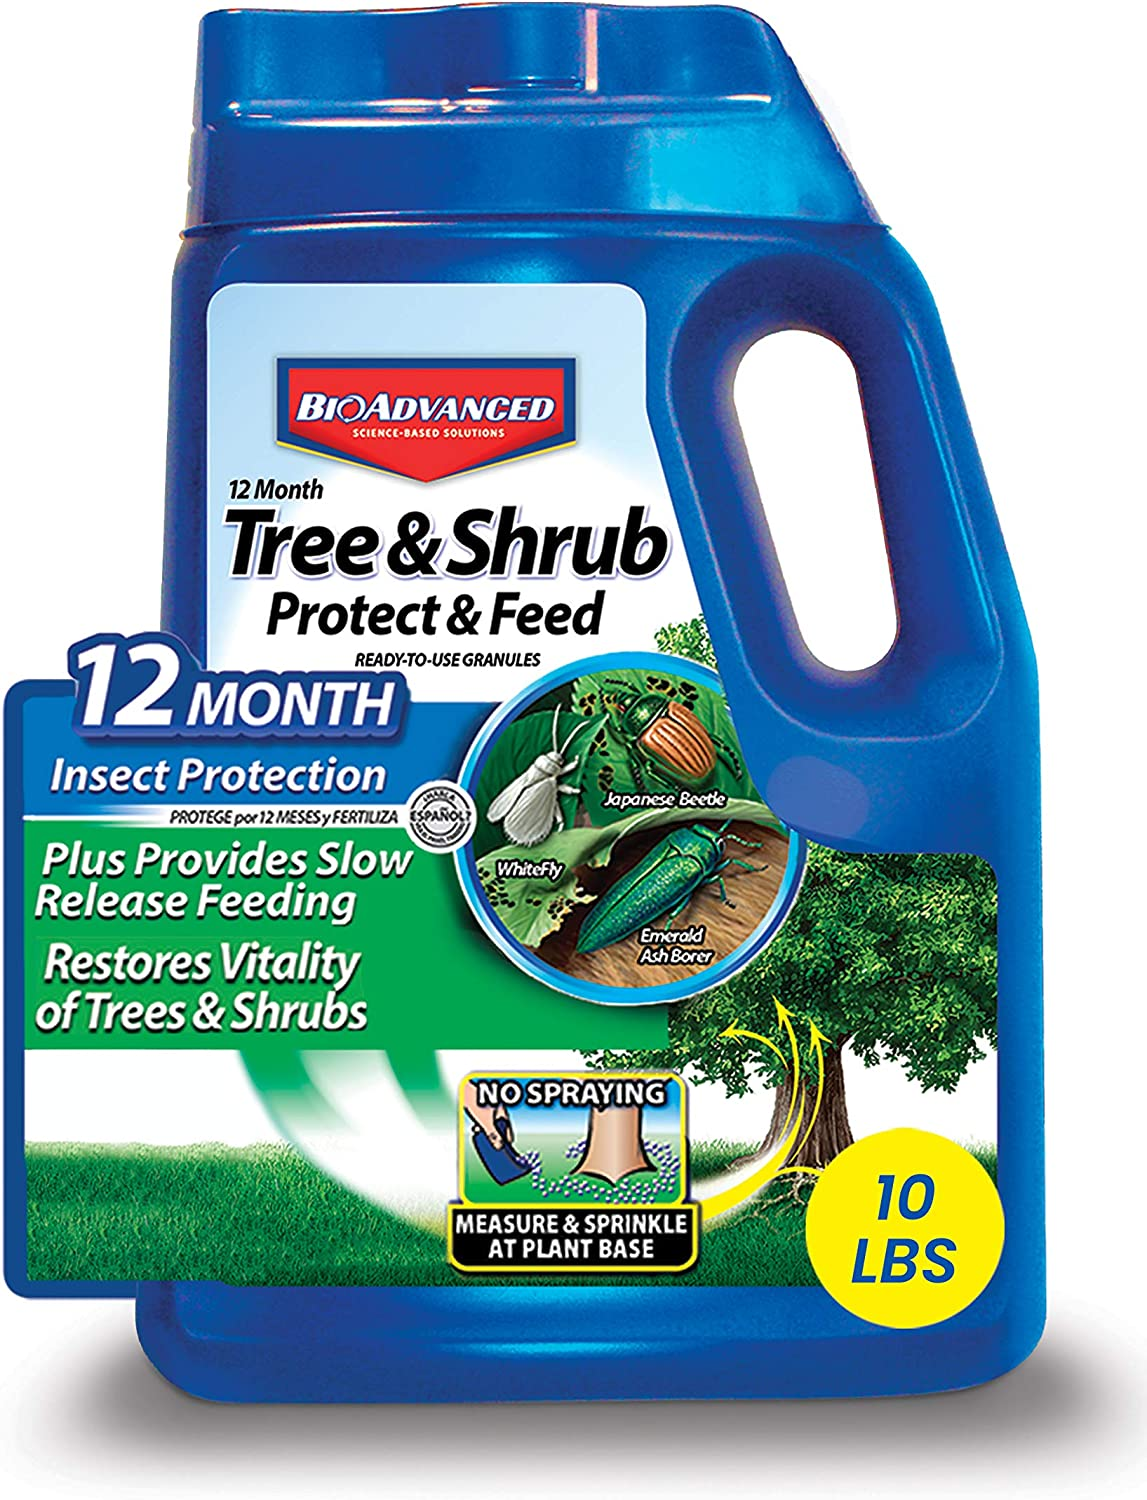 BIOADVANCED Challenge the Regular store lowest price 701910A 12-Month Tree and Ins Protect Shrub Feed